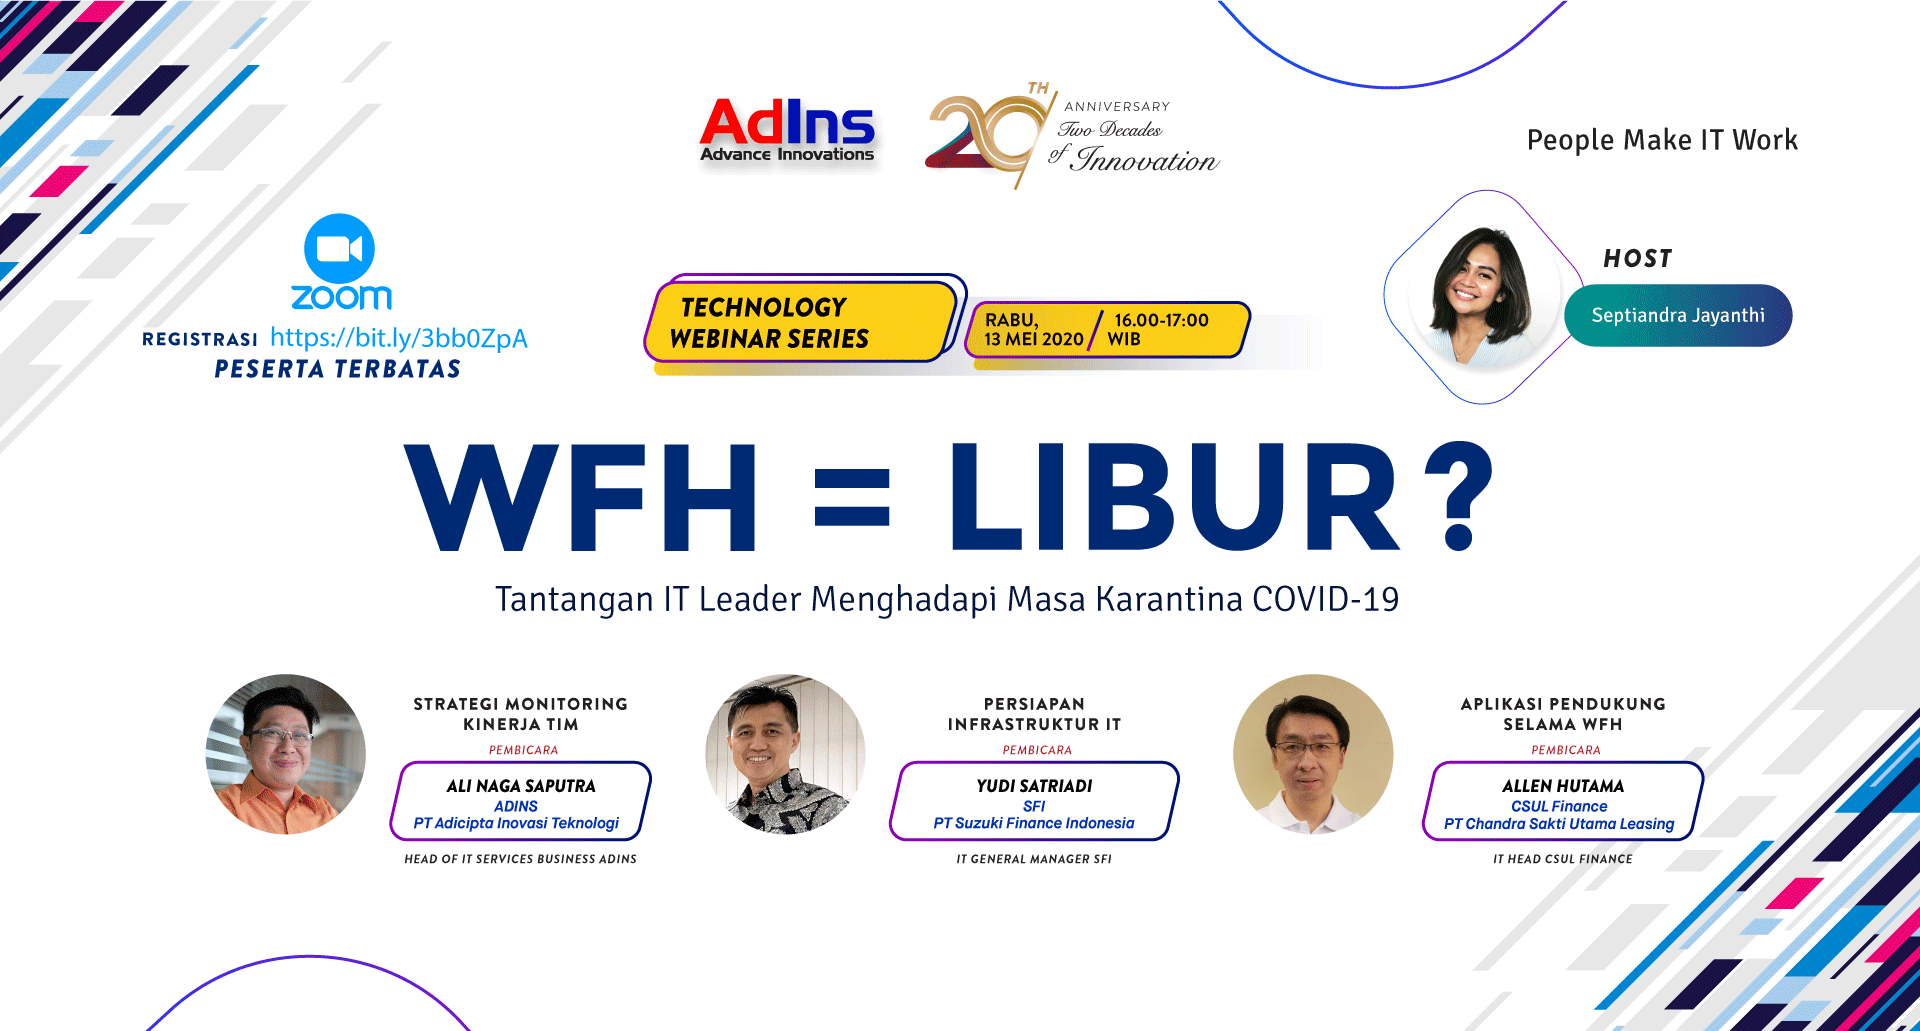 AdIns Technology Web Seminar